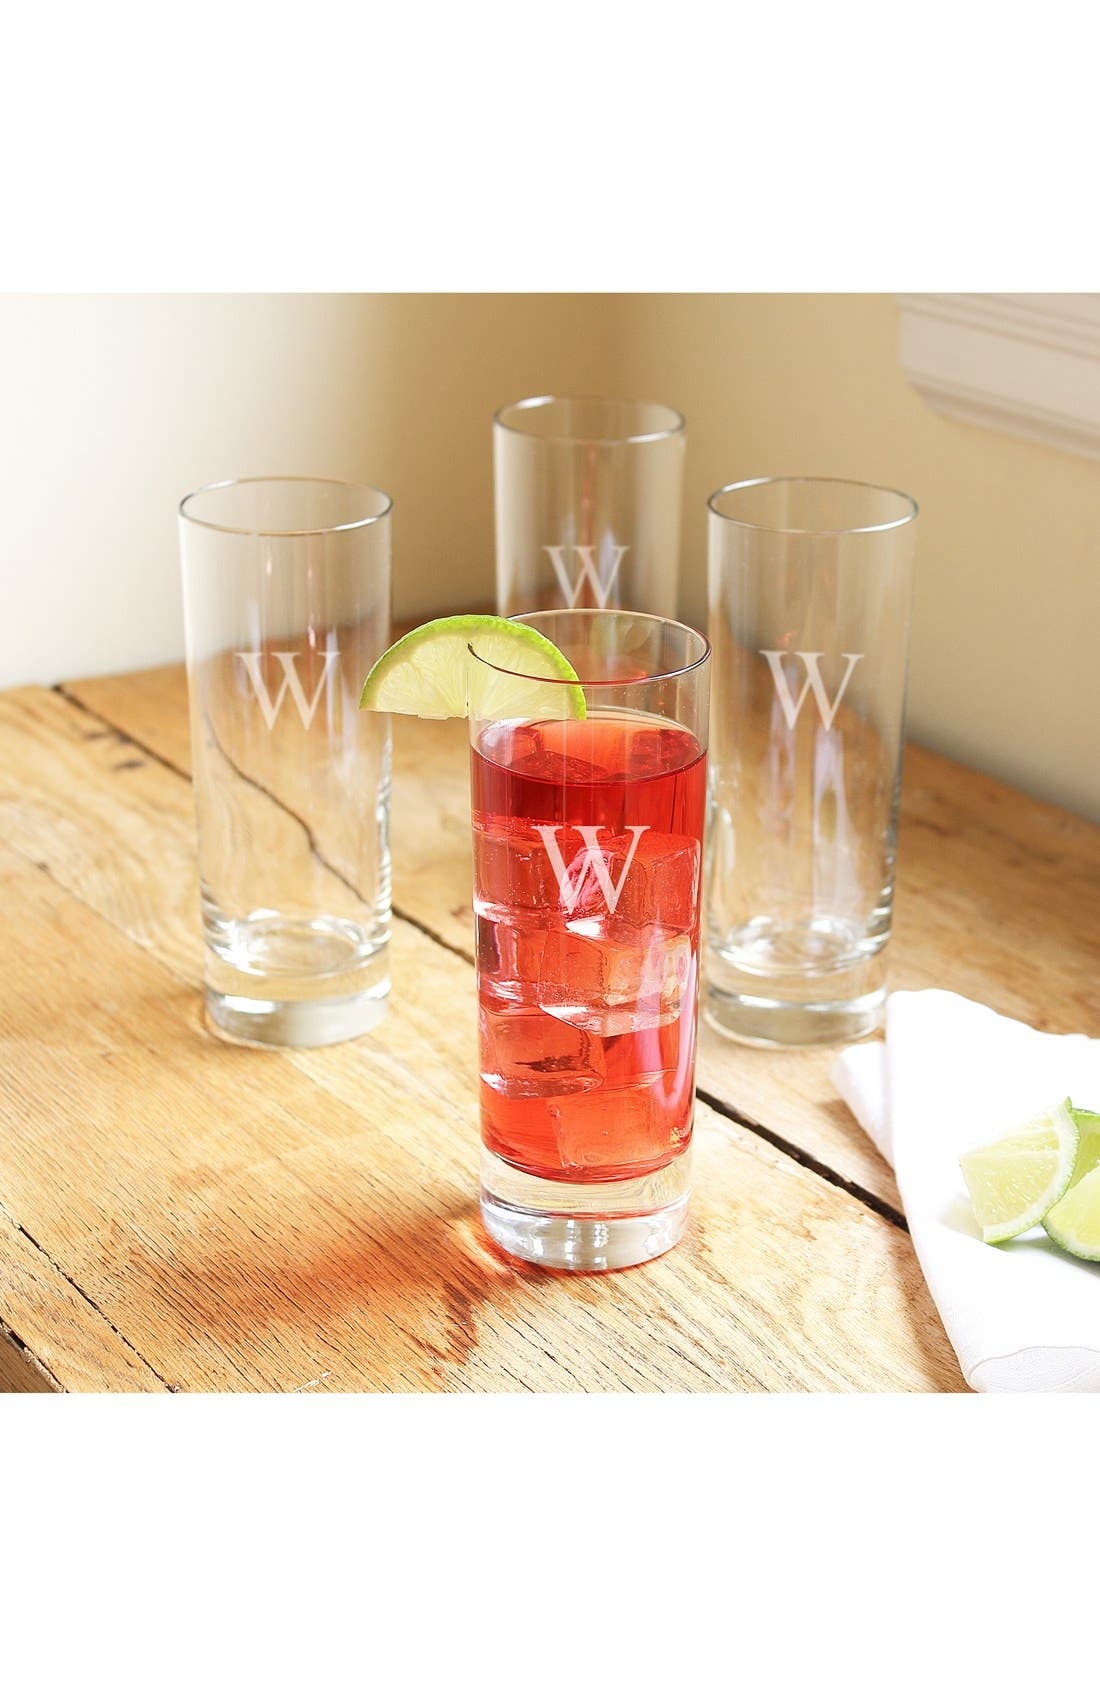 Main Image - Cathy's Concepts Personalized Cocktail Glasses (Set of 4)